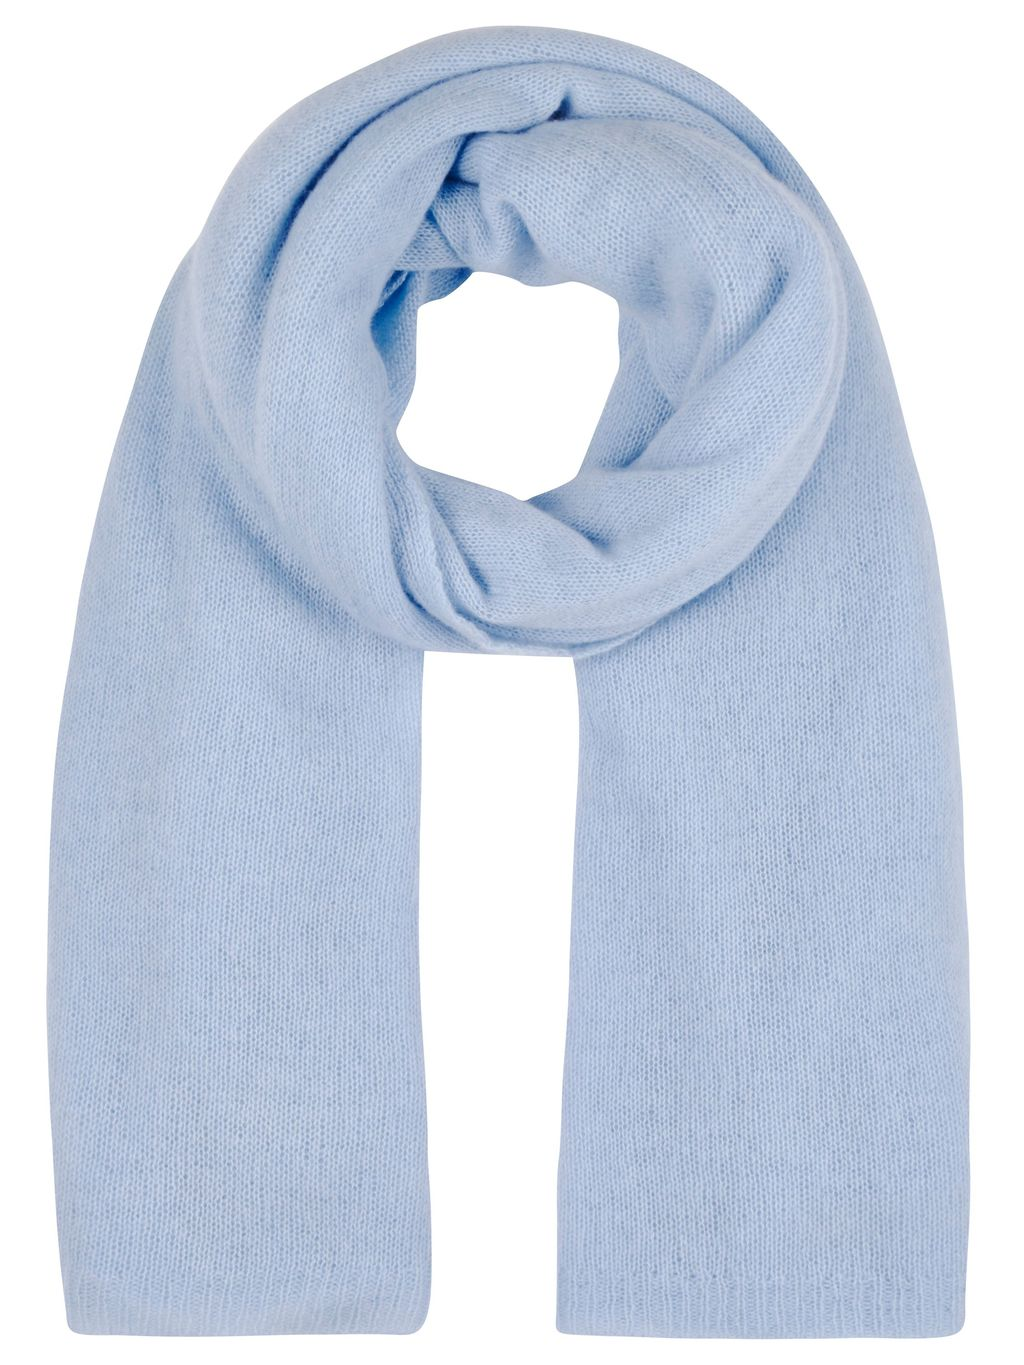 Winser Cashmere Wrap, Blue - predominant colour: pale blue; occasions: casual; type of pattern: standard; style: regular; size: standard; pattern: plain; material: cashmere; season: s/s 2016; wardrobe: highlight